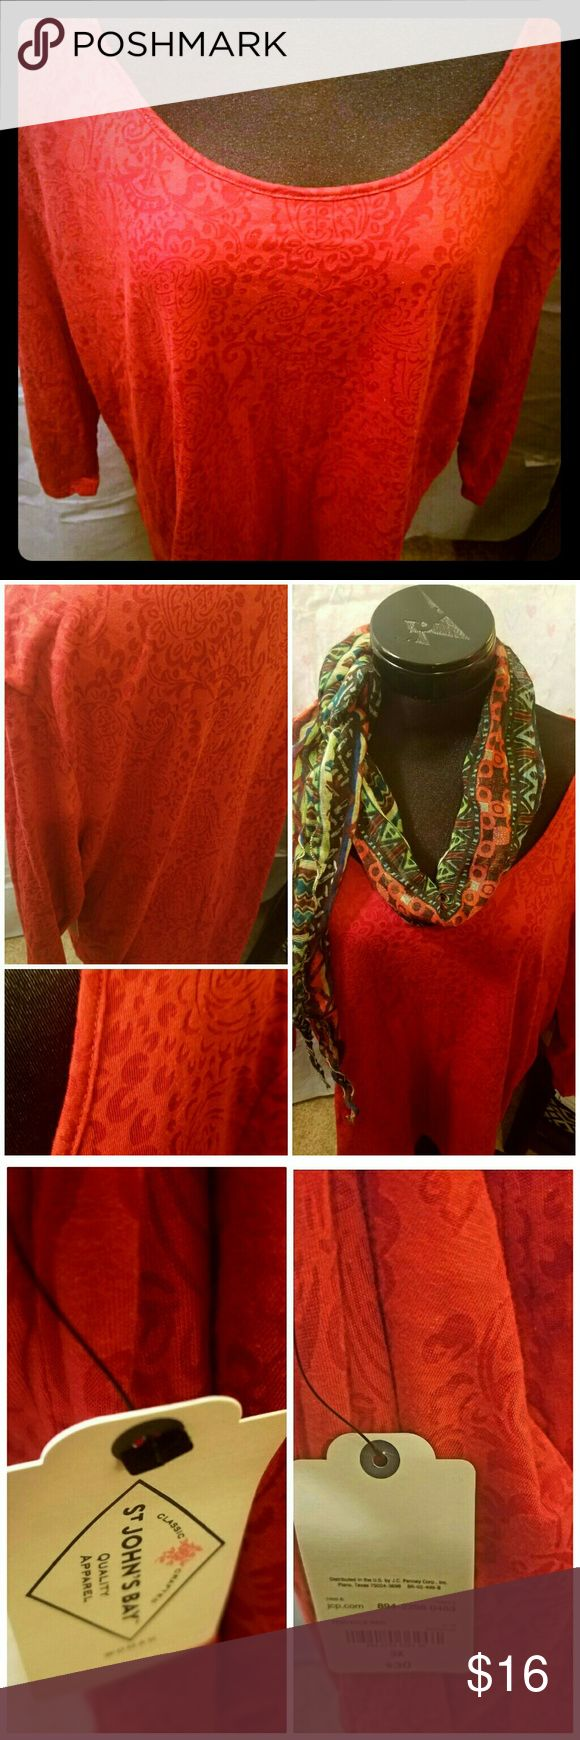 St. Johns Bay Red Tunic size 3X.  NWT. St. Johns Bay Red Tunic with scoop neck. Size 3X.  NWT. 3 qtr. Sleeves.  Gorgeous shade of red!  Originally  $30. Good quality.   Wash and wear.   Smoke free. St. John's Bay Tops Tunics